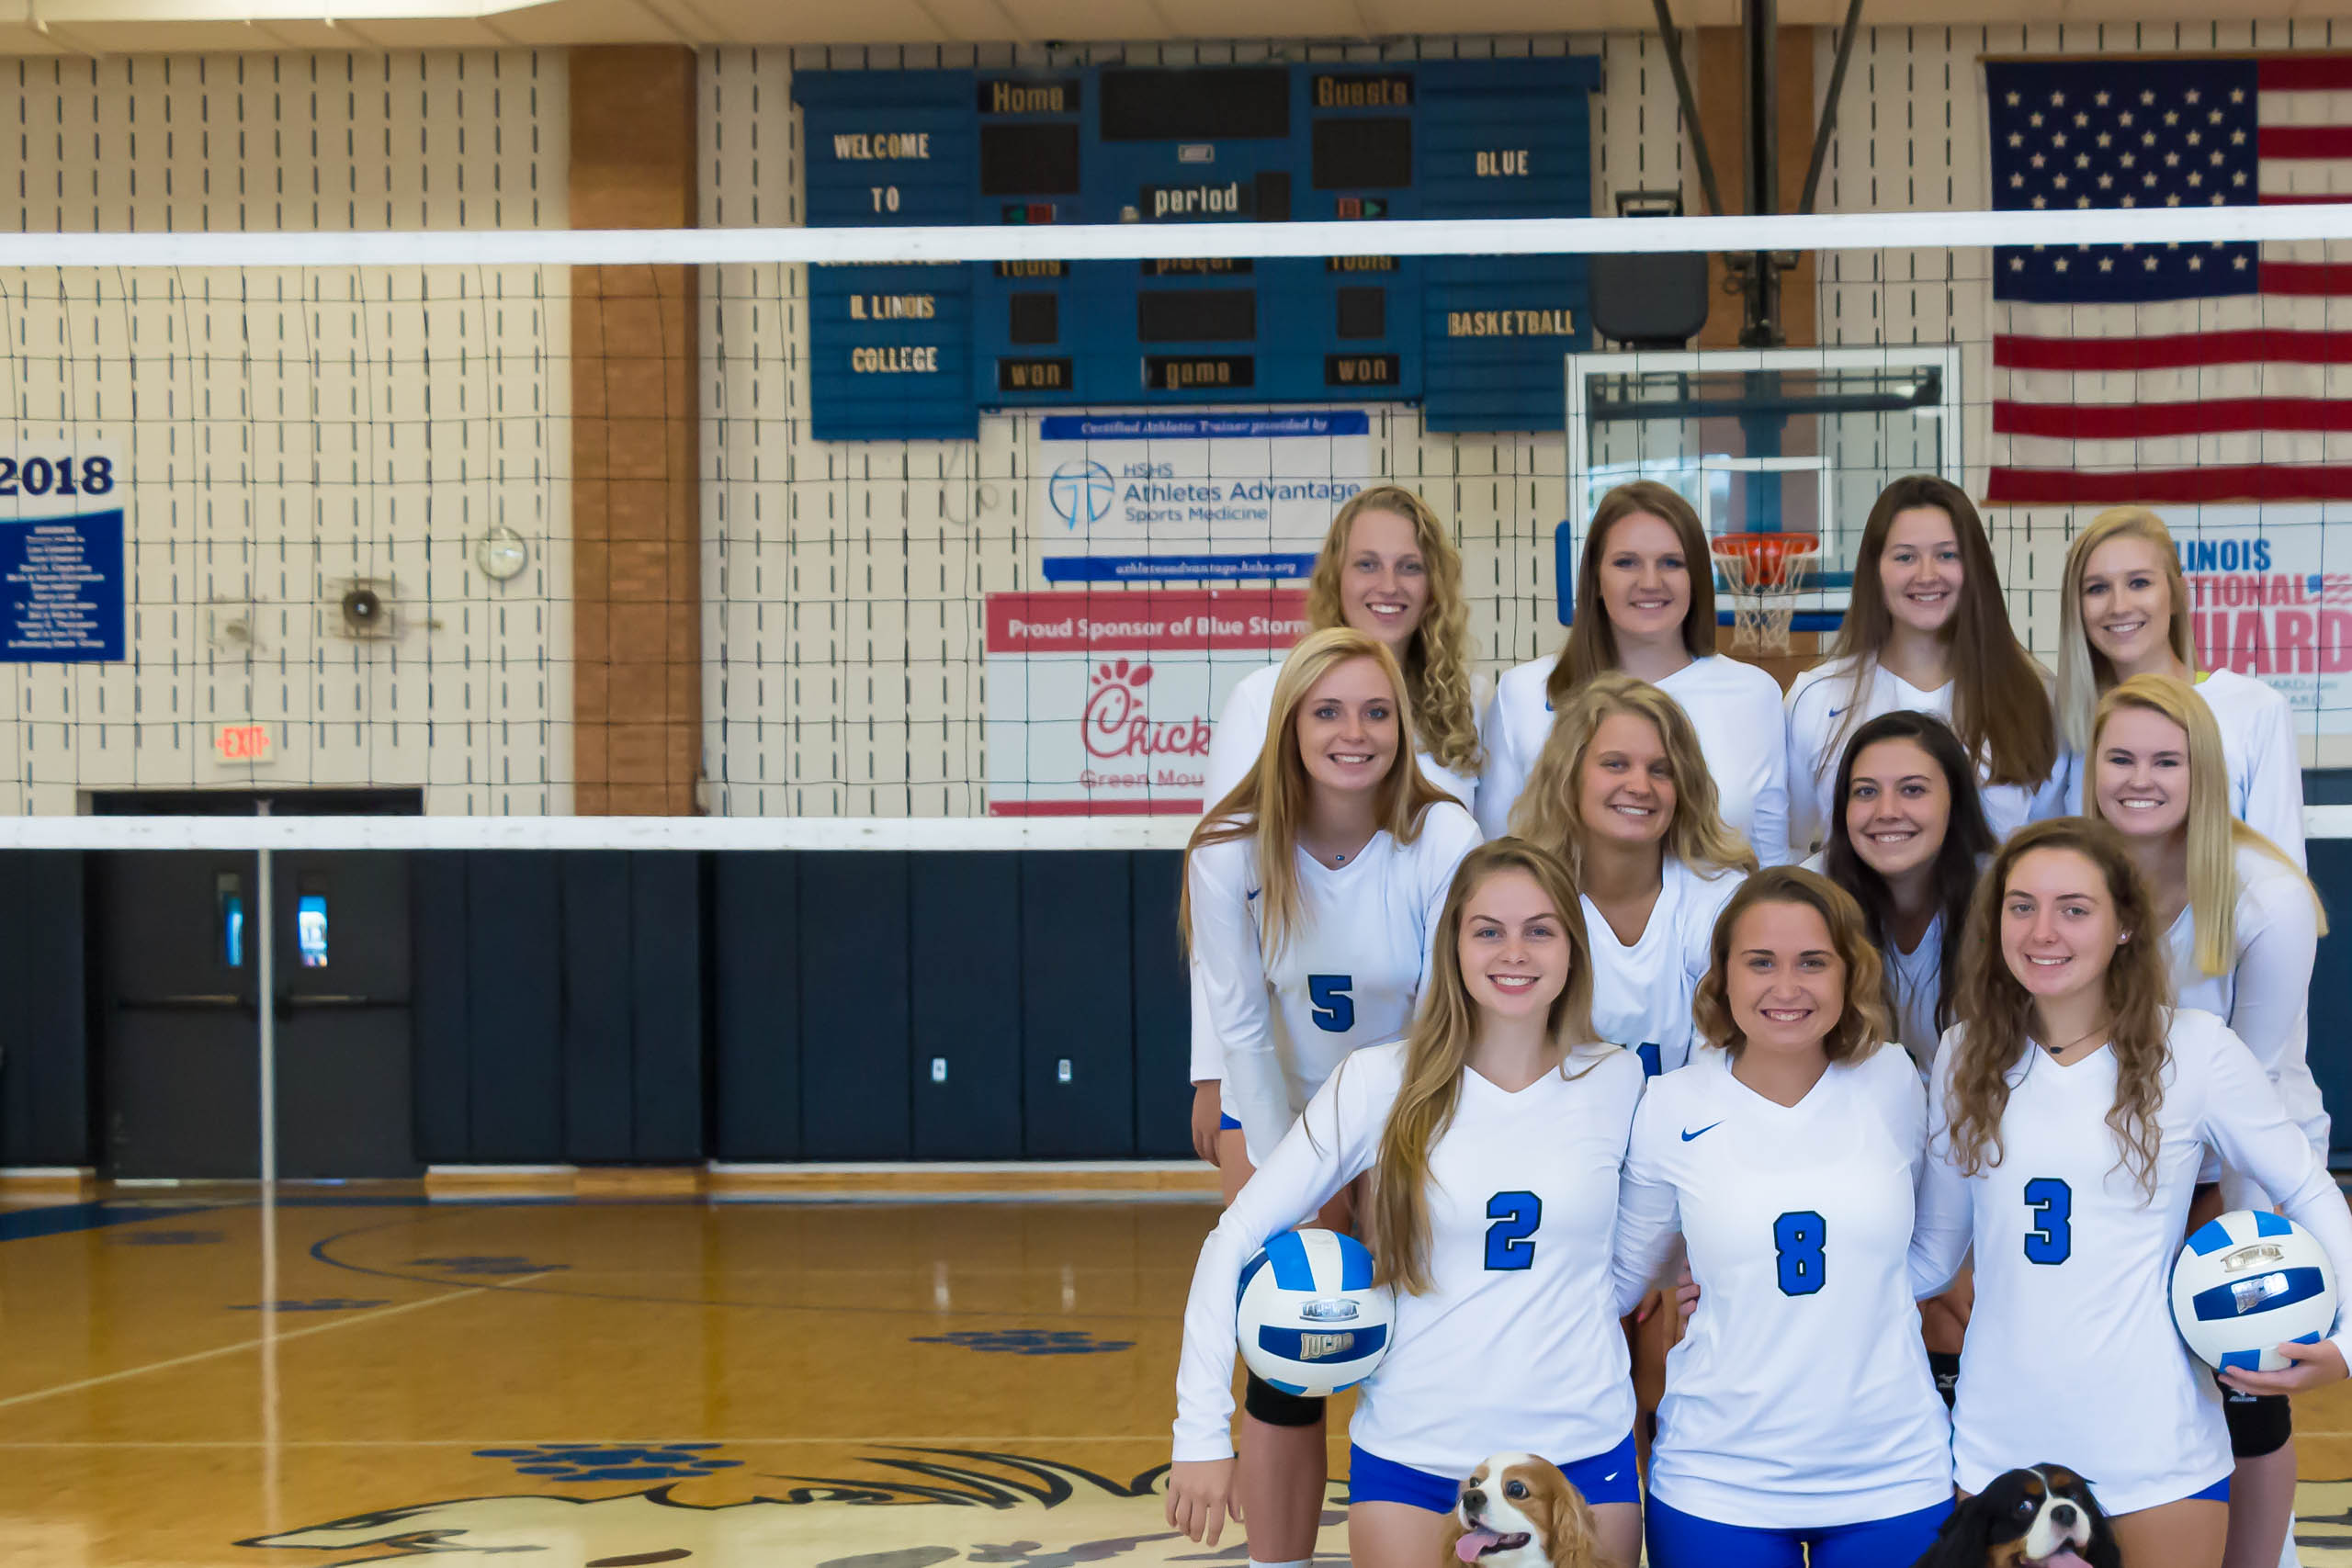 A group photo of the women's volleyball team.